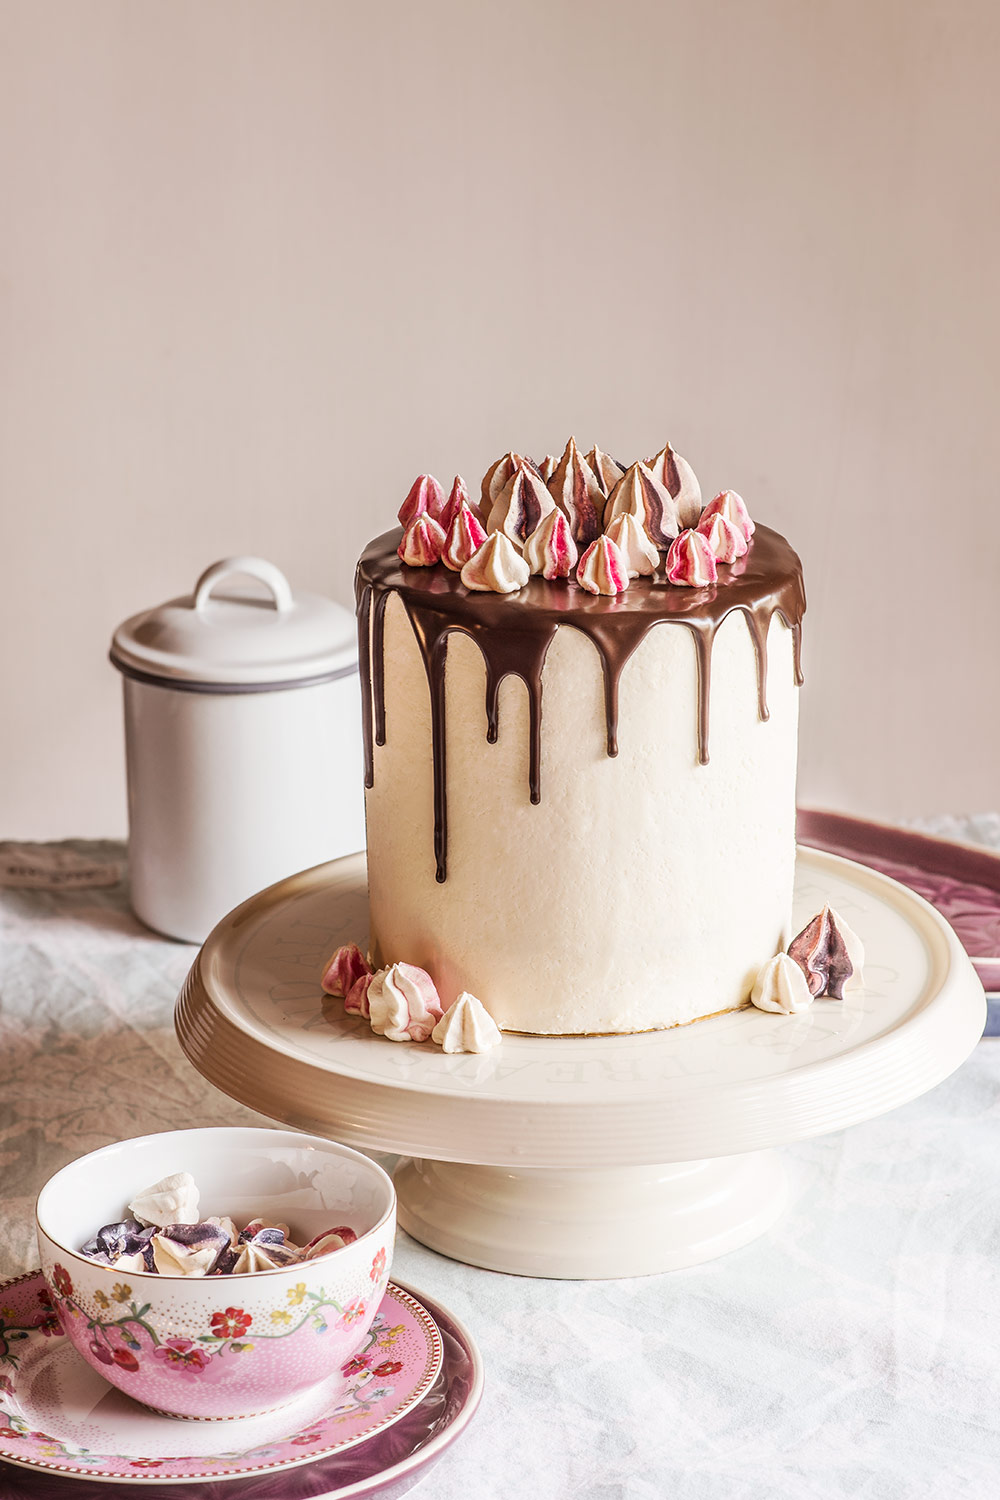 receta layer cake chocolate merengue